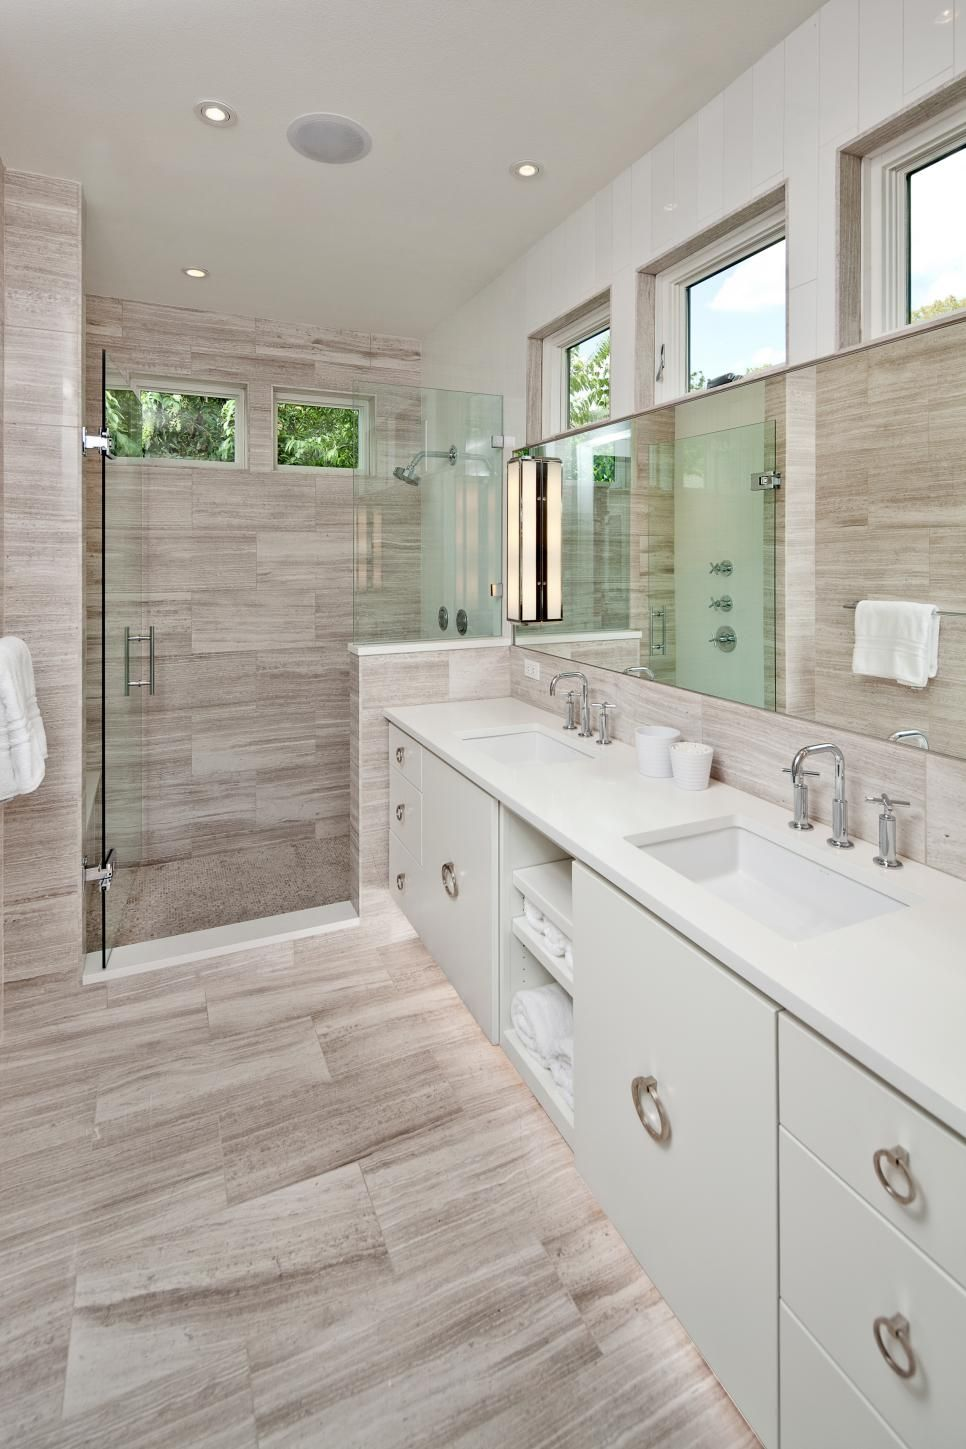 Rooms Viewer  Hgtv  Bathroom Remodel  Pinterest  Spa Bathrooms Amazing Spa Bathroom Remodel Inspiration